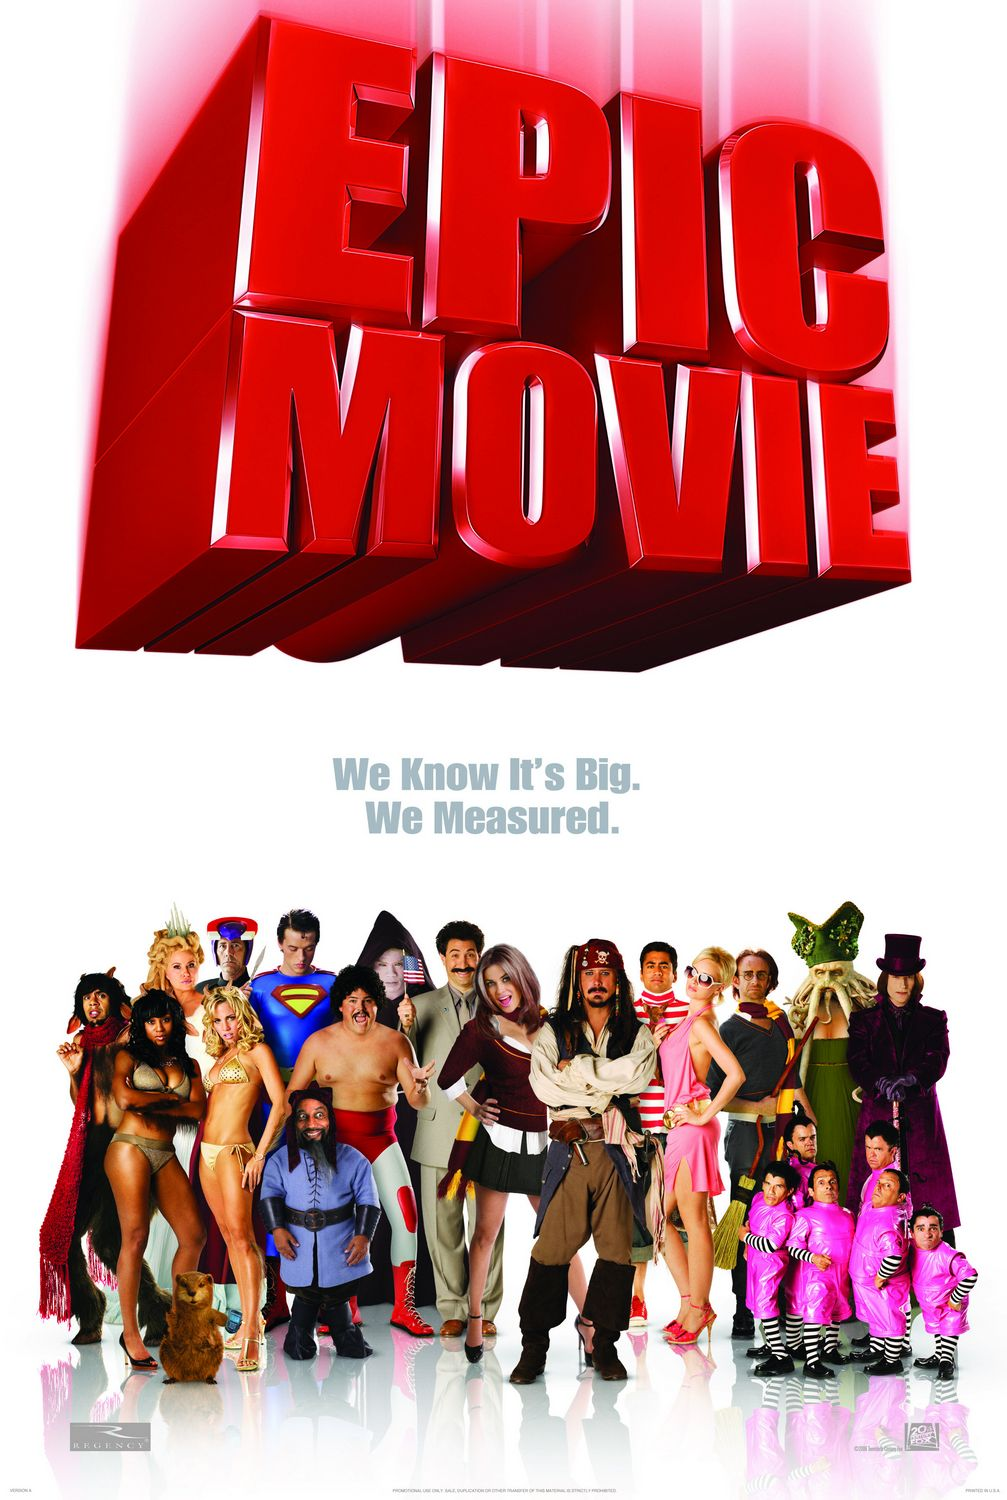 Movies at 300MB:: Epic Movie (2007) DvdRip 300MB | Movies @ 300MB ...